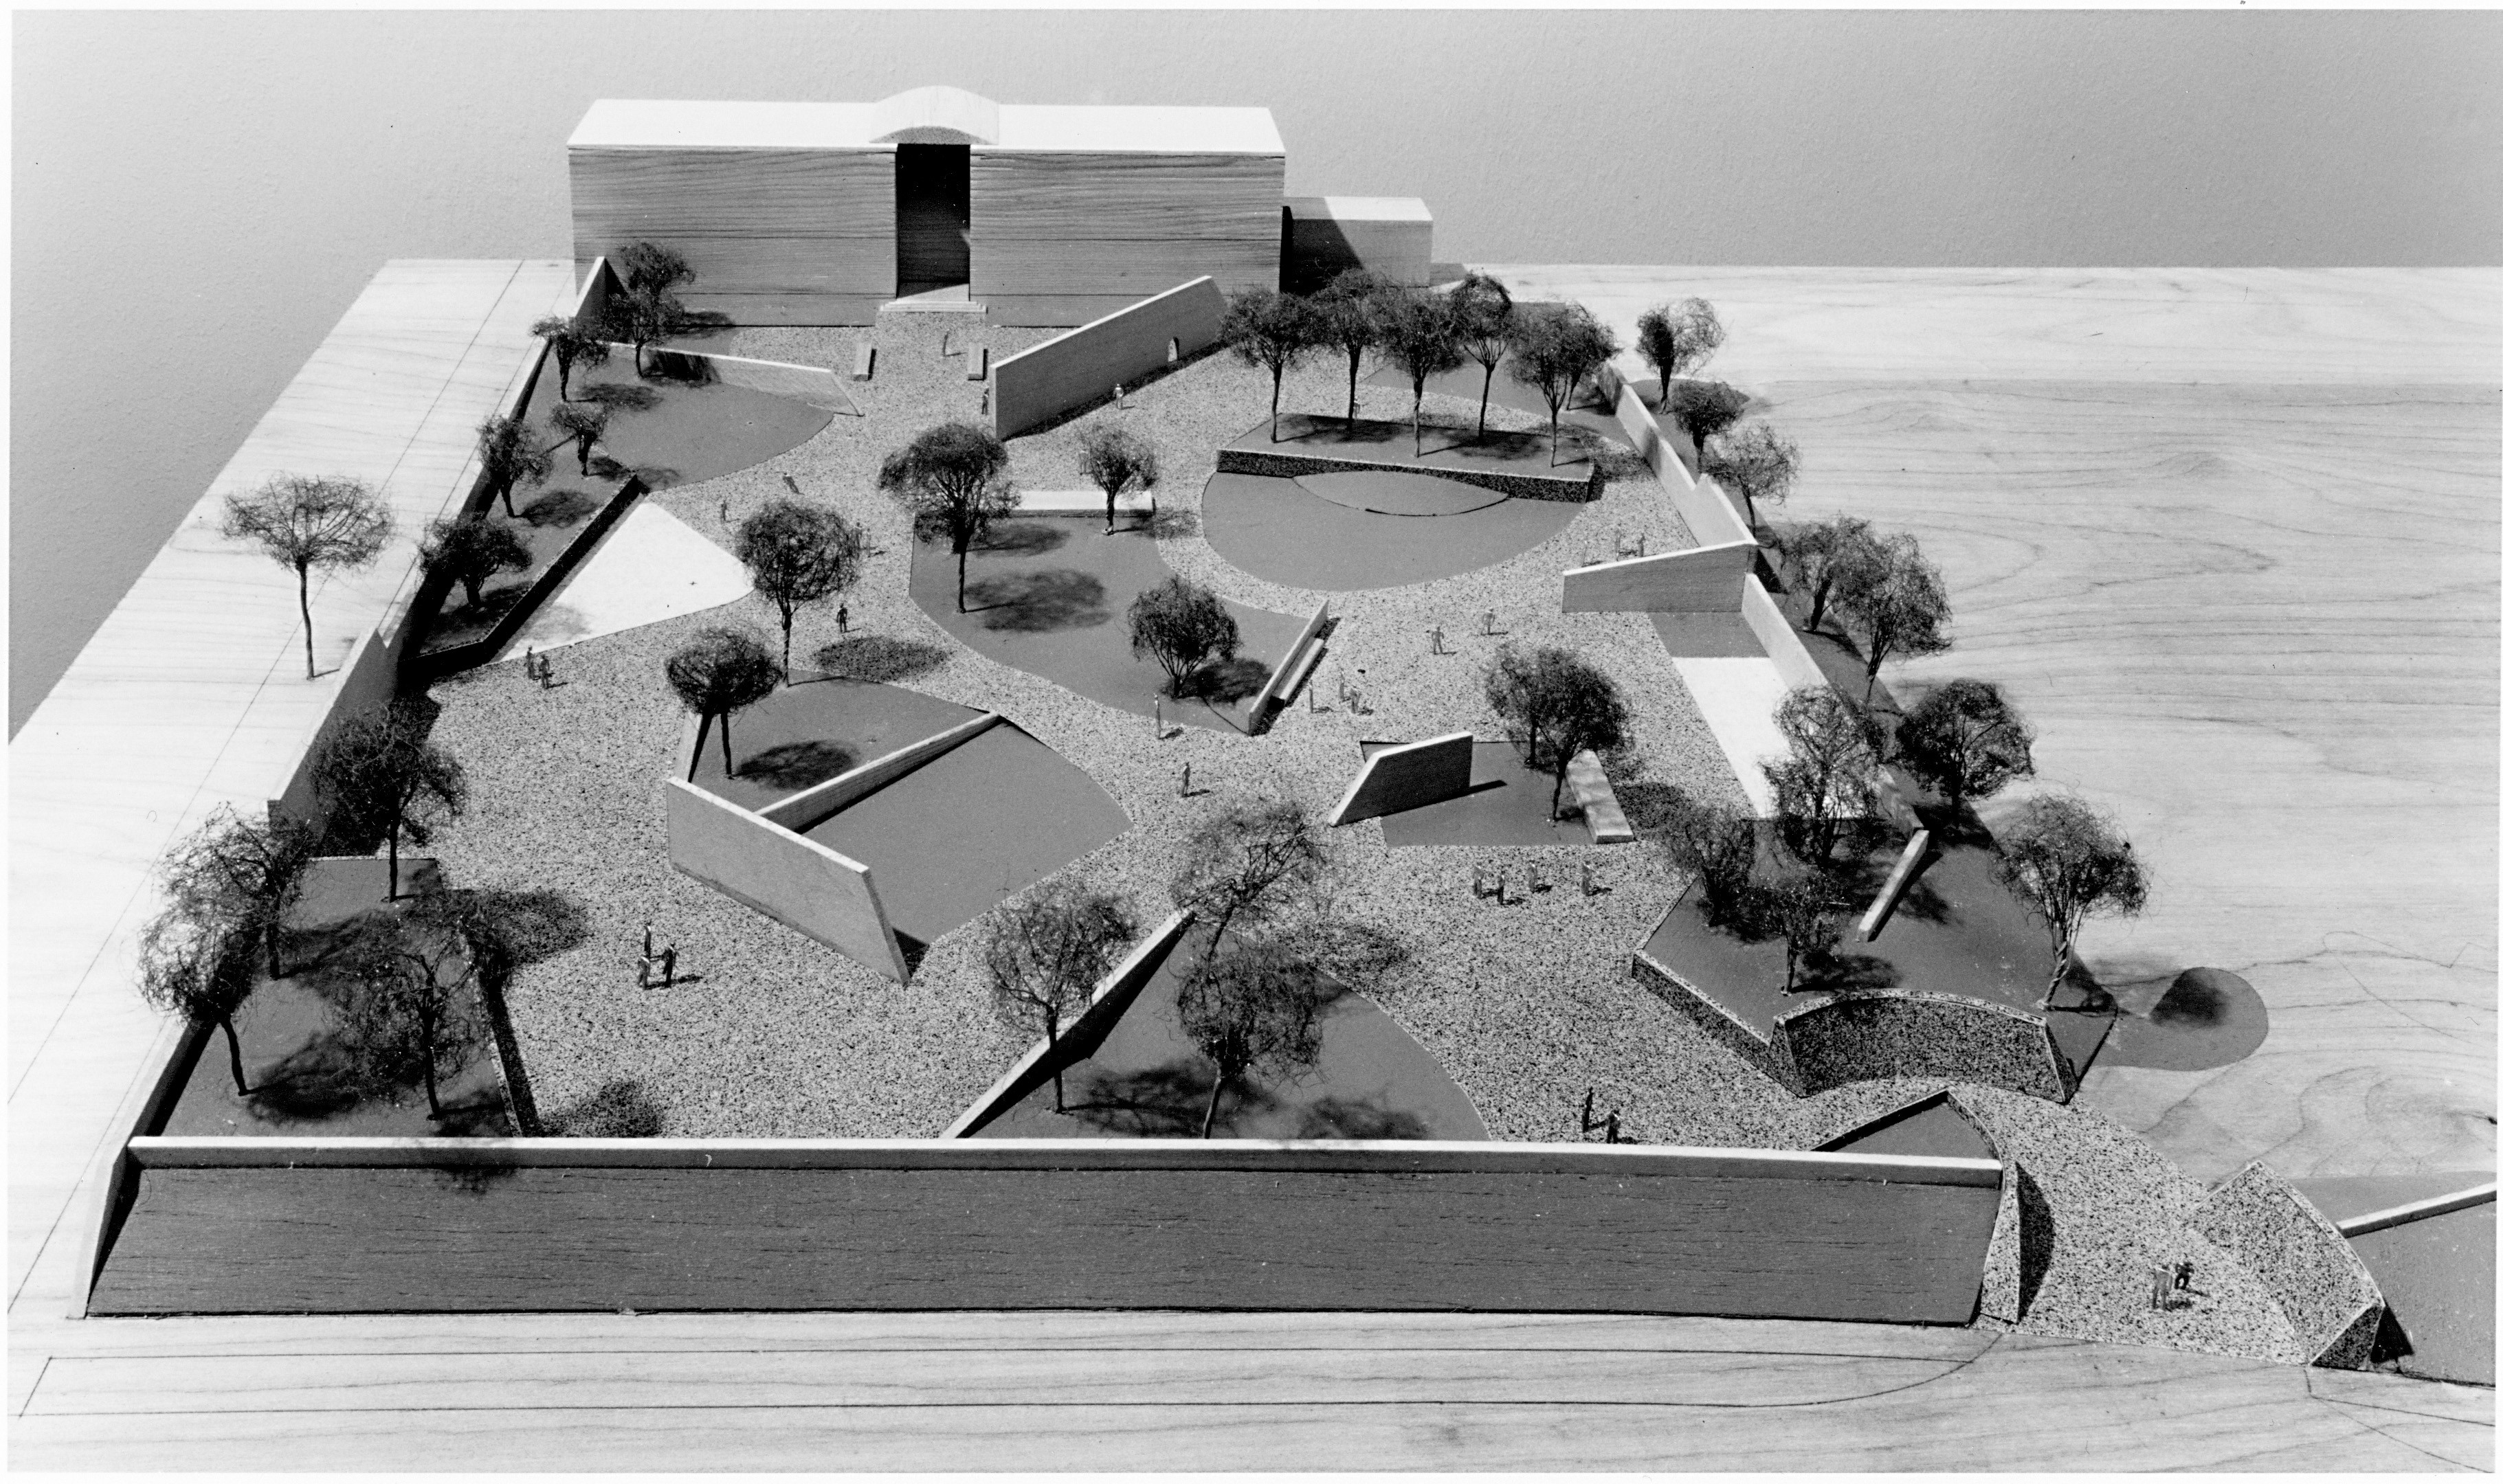 The mfah an architectural history the museum of fine - Lillie and hugh roy cullen sculpture garden ...